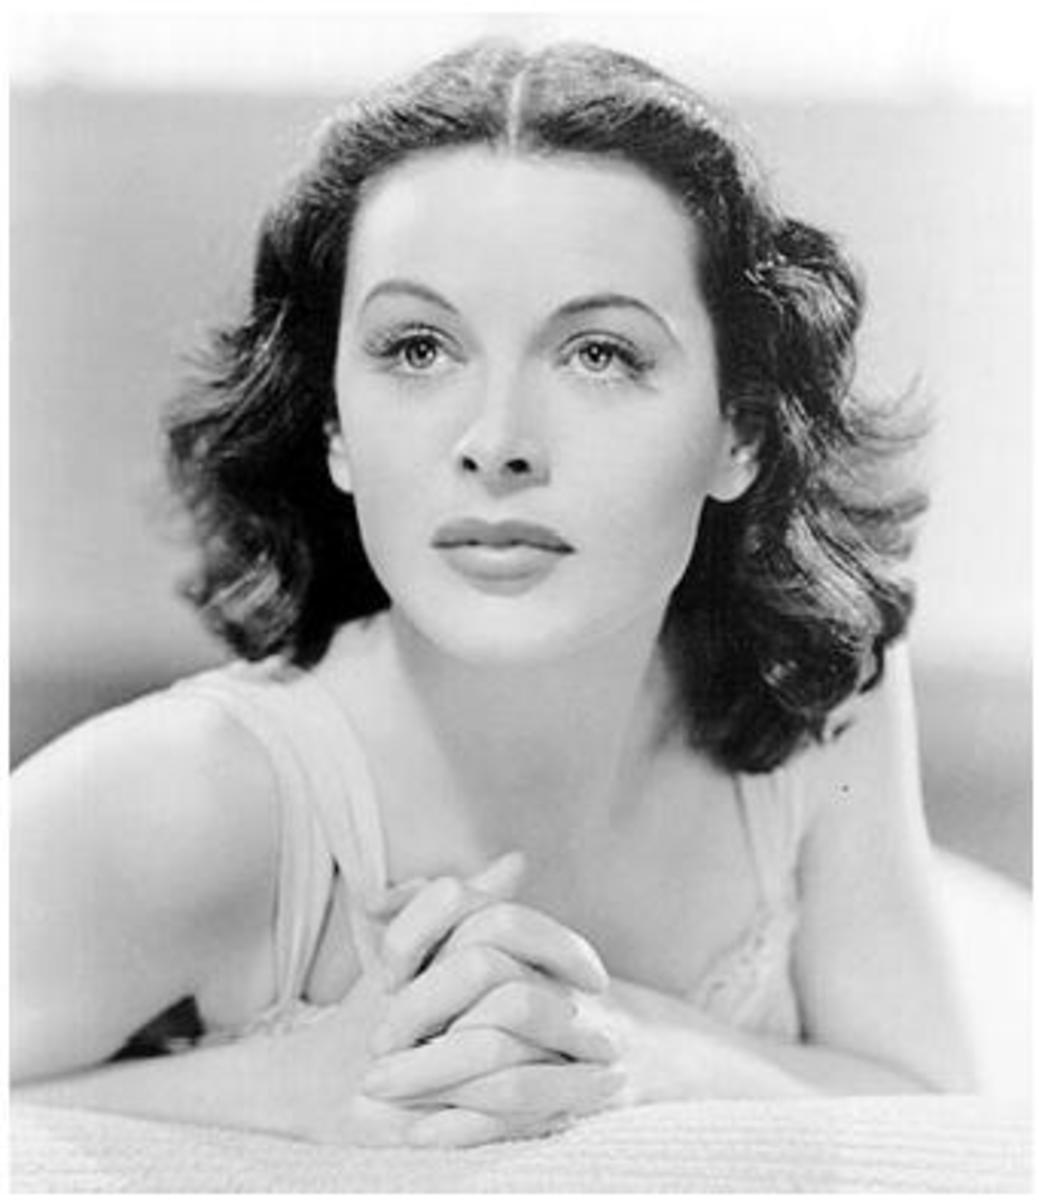 The glamorous Hedy Lamarr